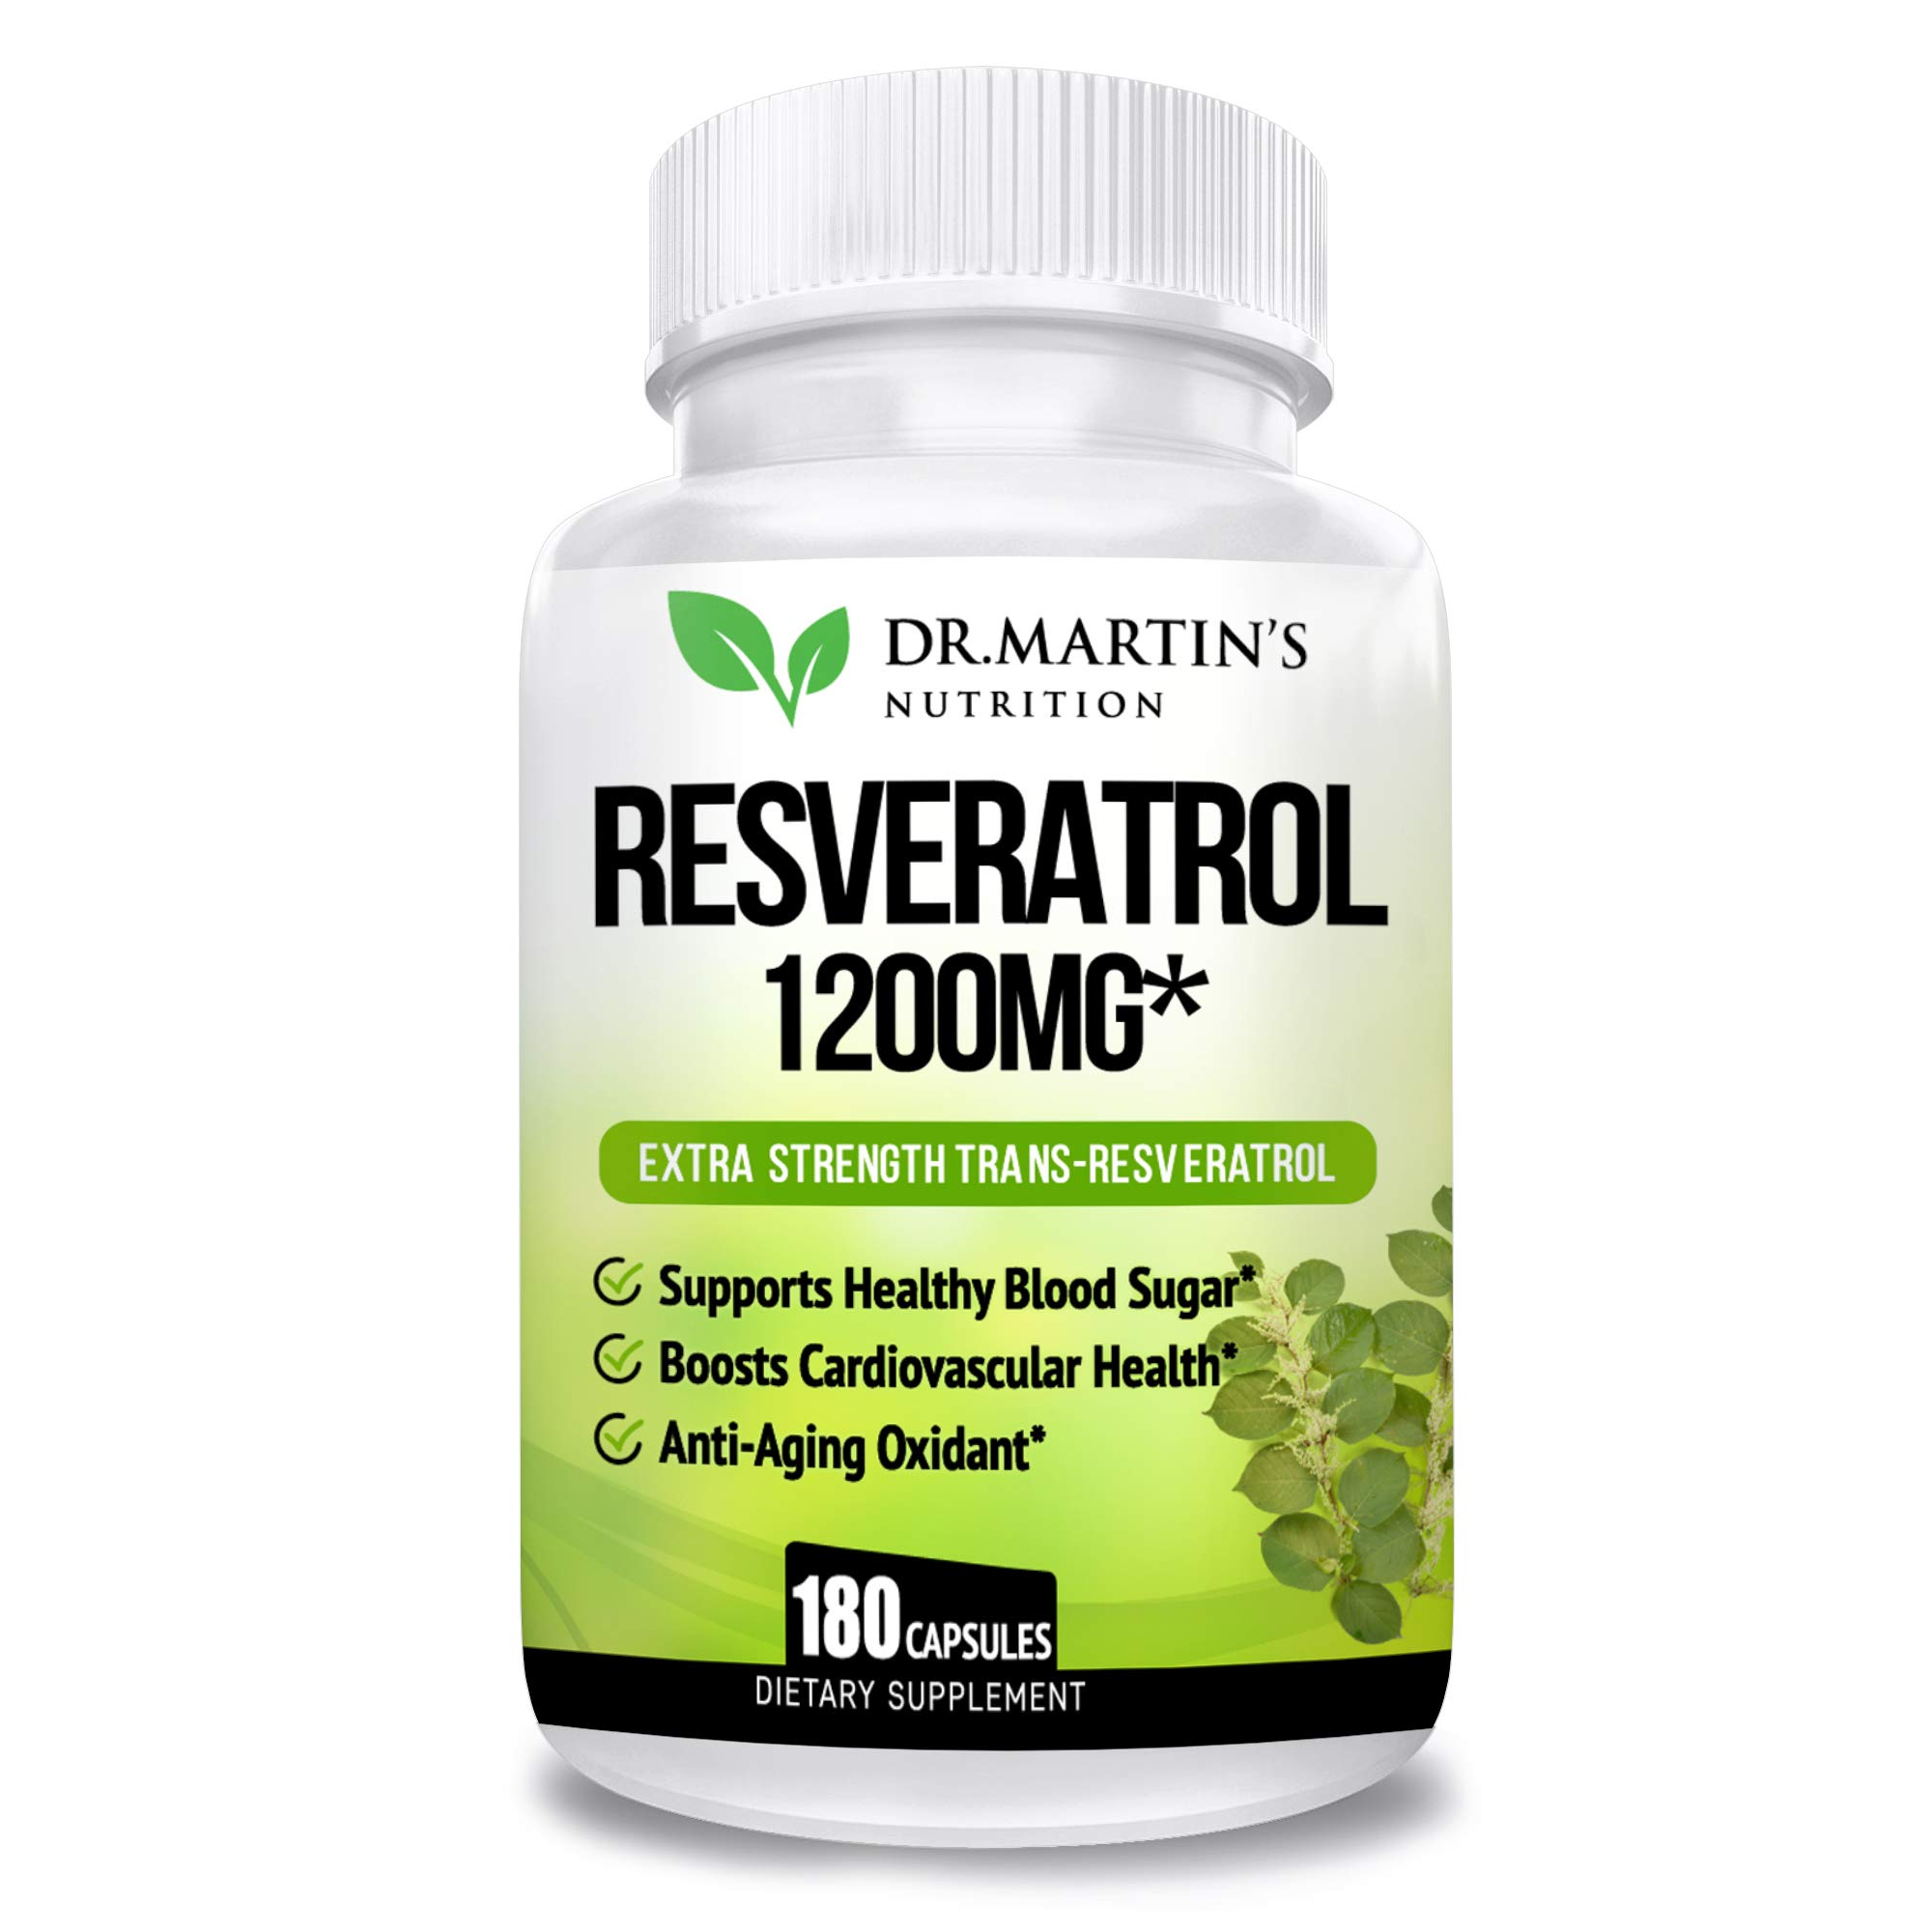 Extra Strength 100% Pure Resveratrol 1200mg - 180 Capsules - 3 Months Supply | Antioxidant Supplement | Natural Trans-Resveratrol Pills | for Anti-Aging, Heart Health, Immune System & Brain Function